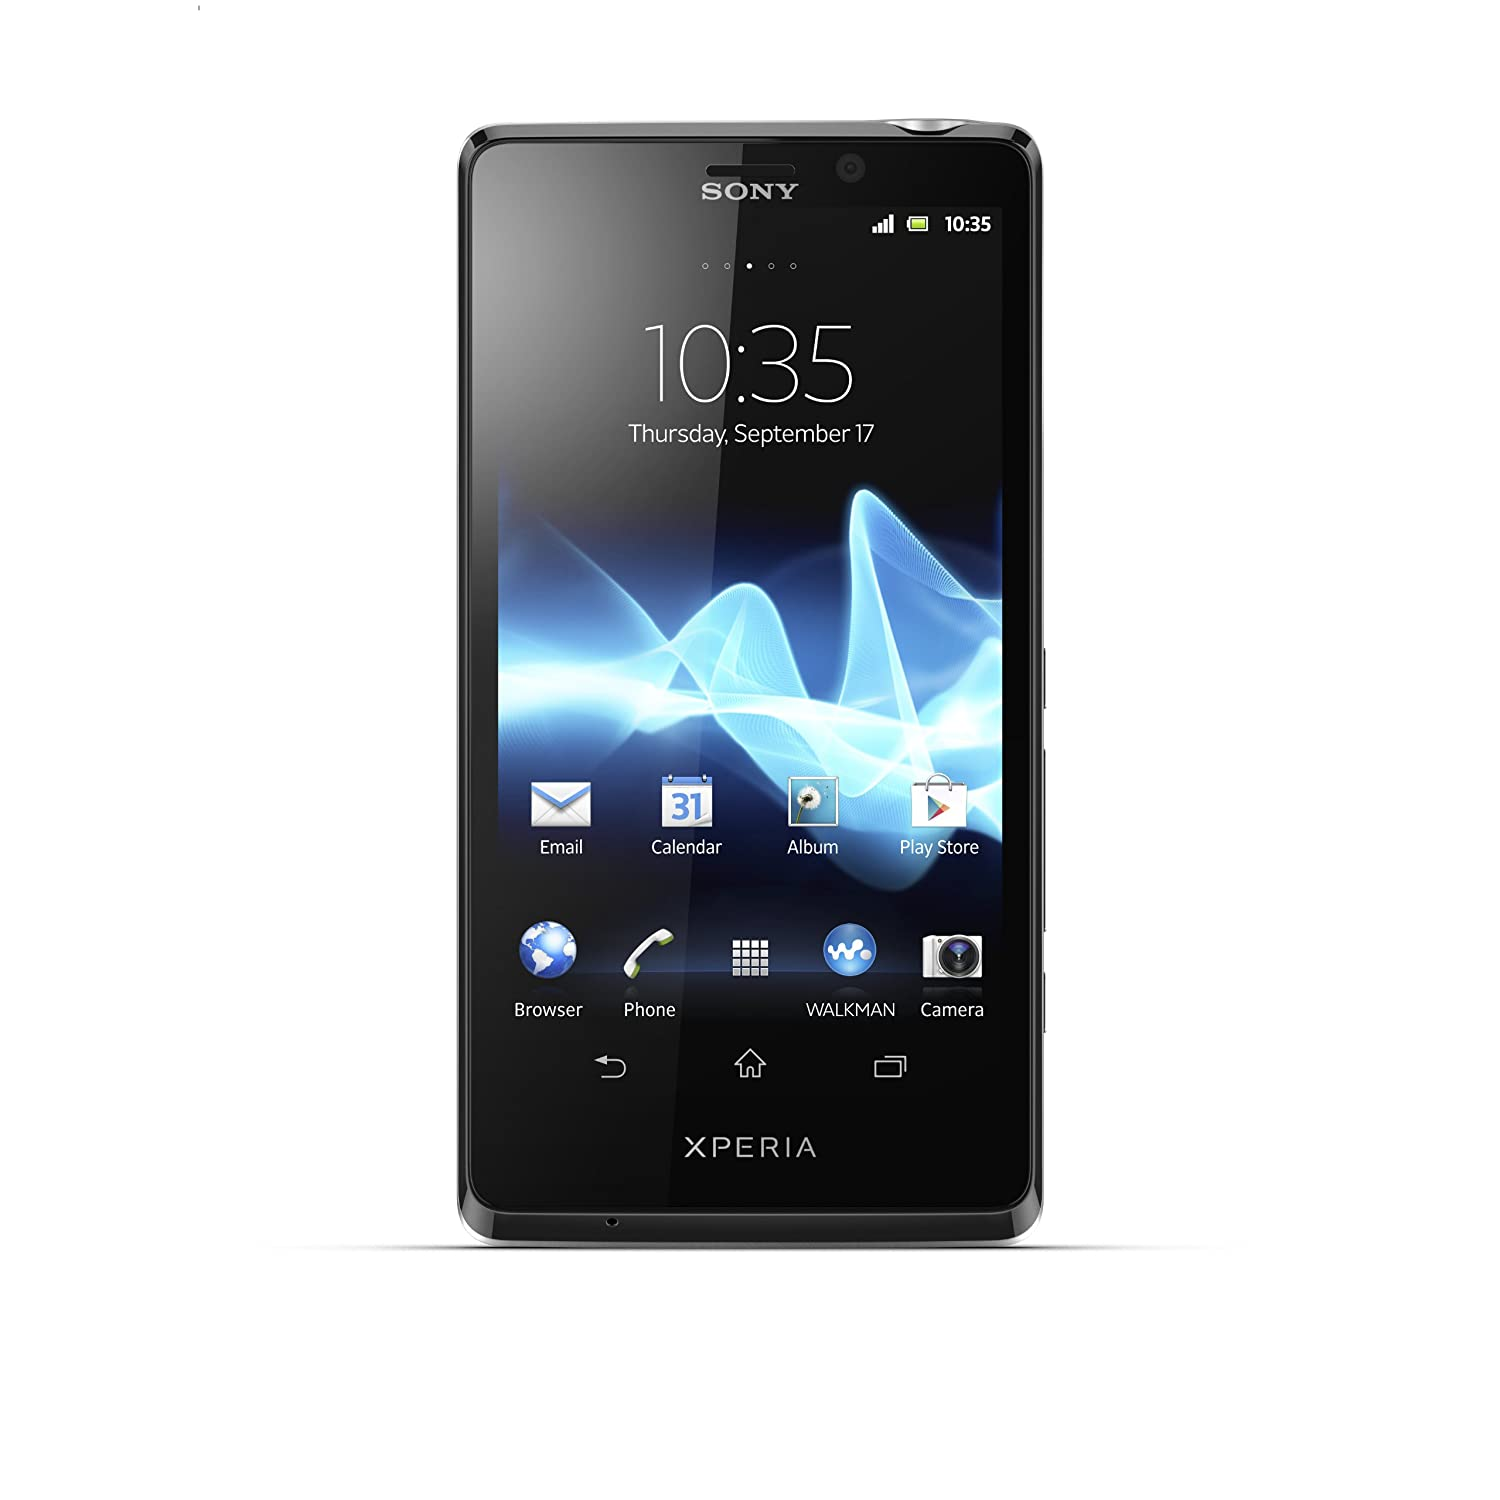 Sony-Xperia-T-LT30P-Unlocked-Android-Phone-U-S-Warranty-Silver-